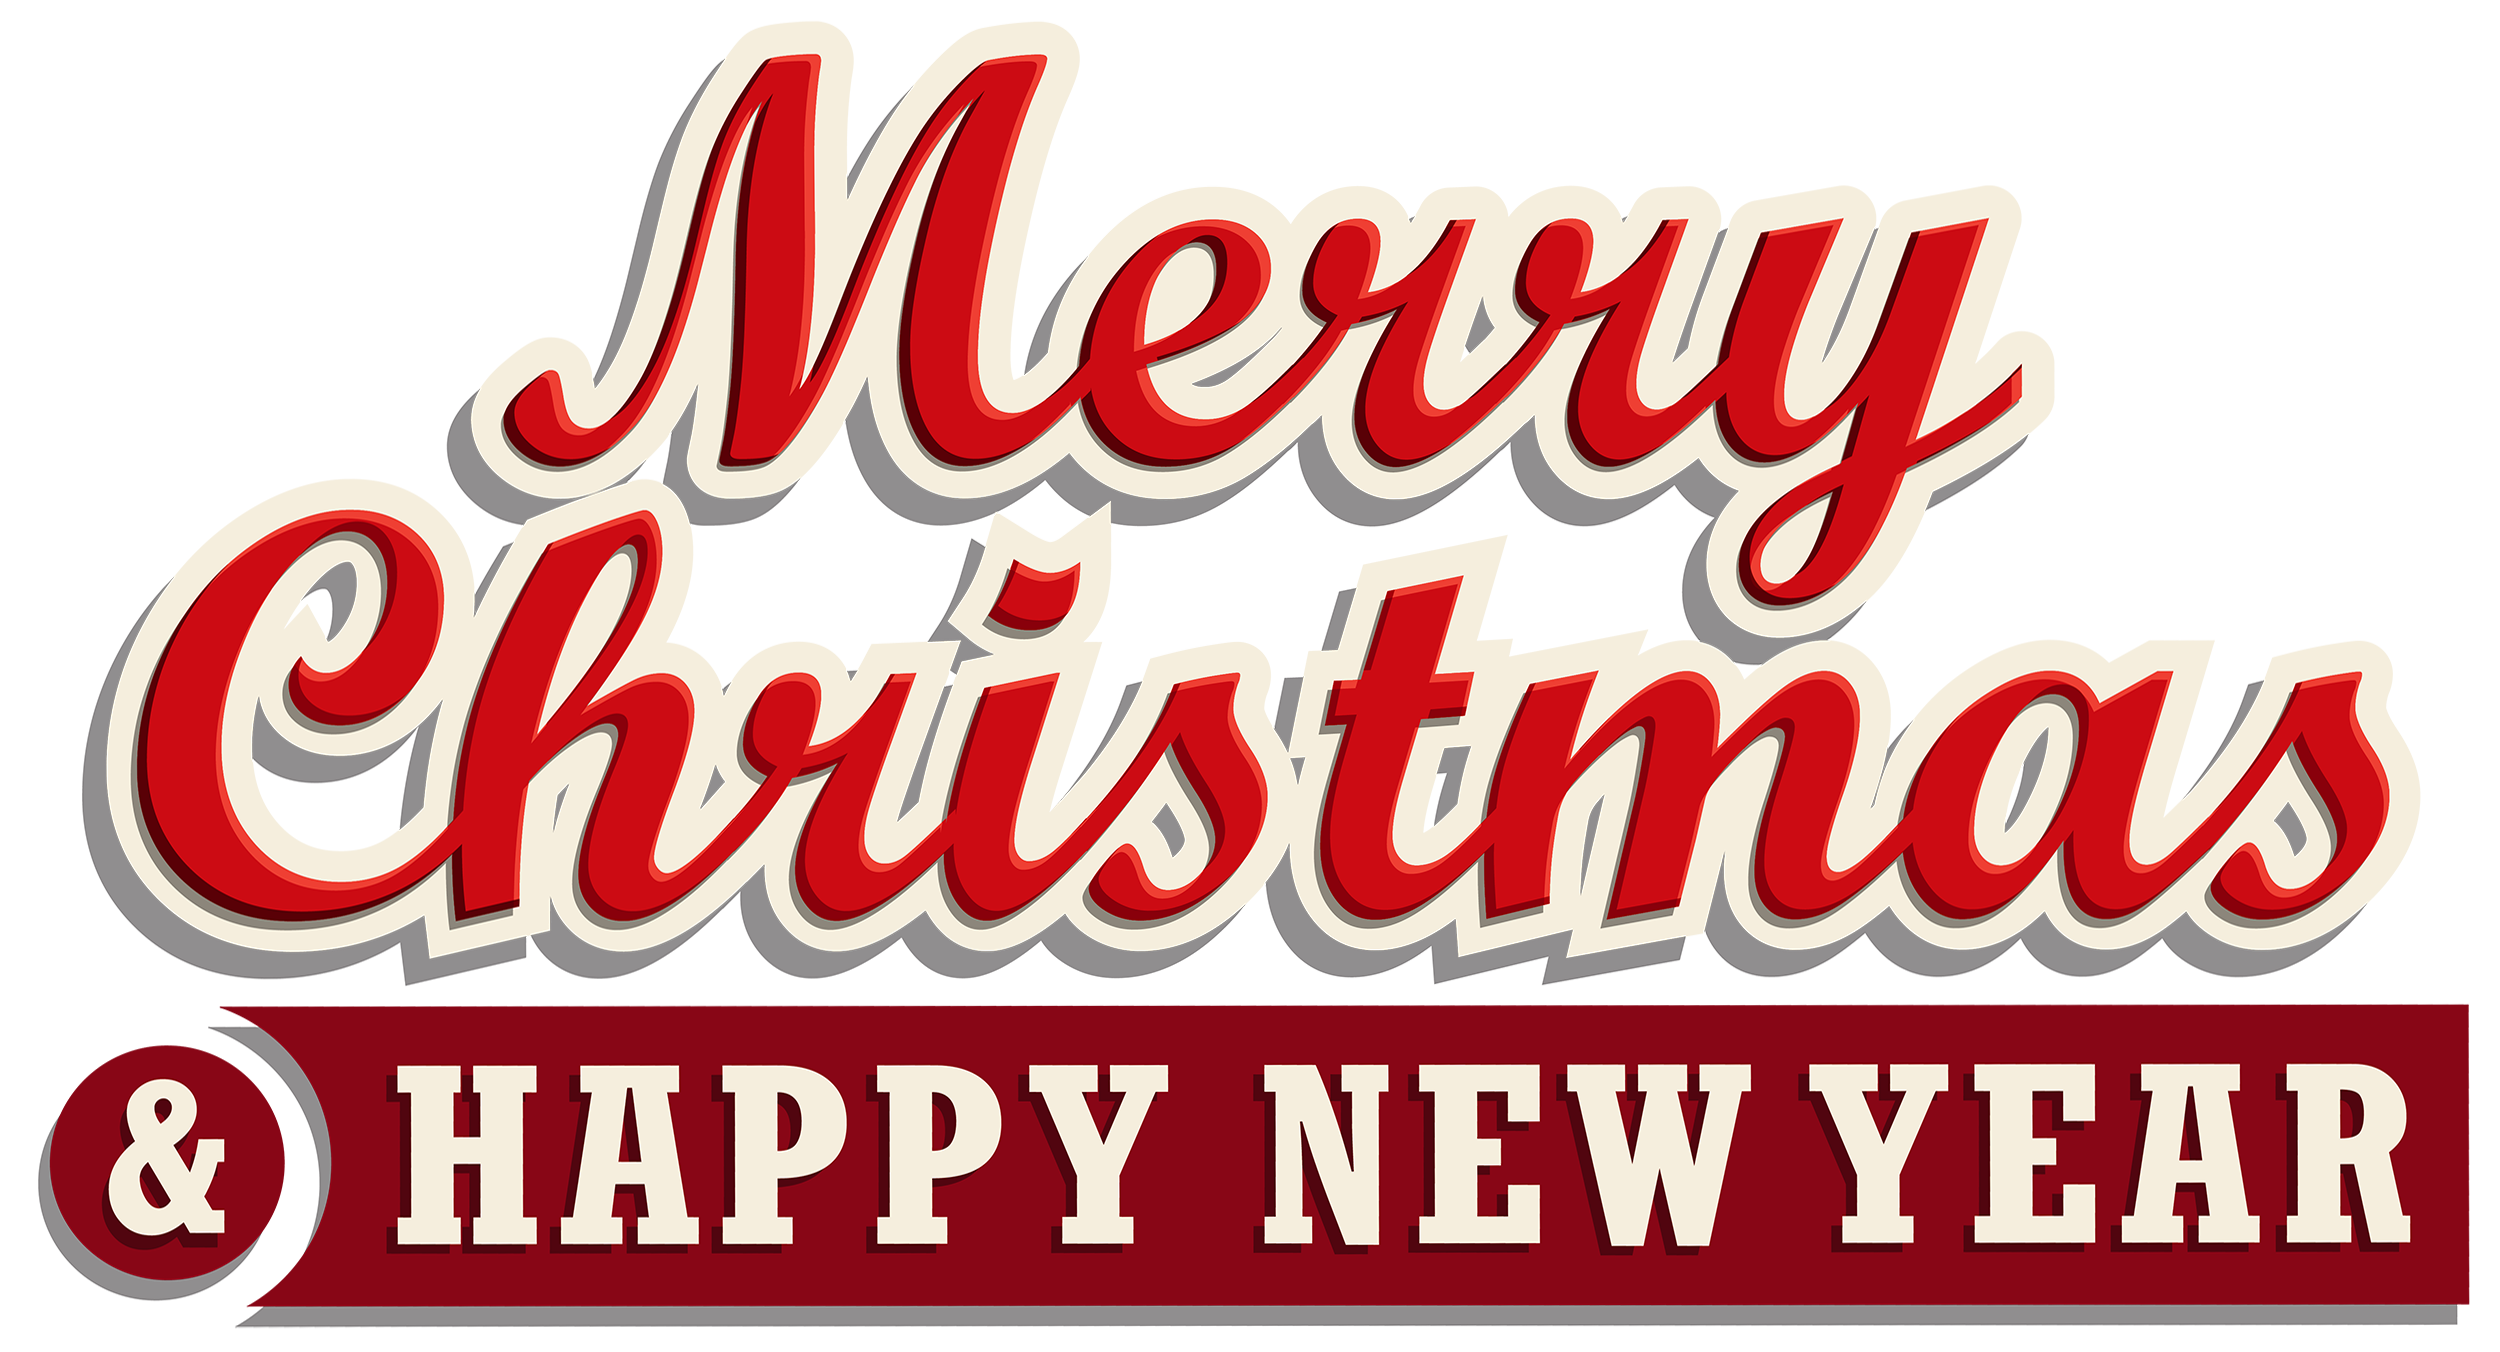 Frozen clipart tulisan. Merry christmas and happy